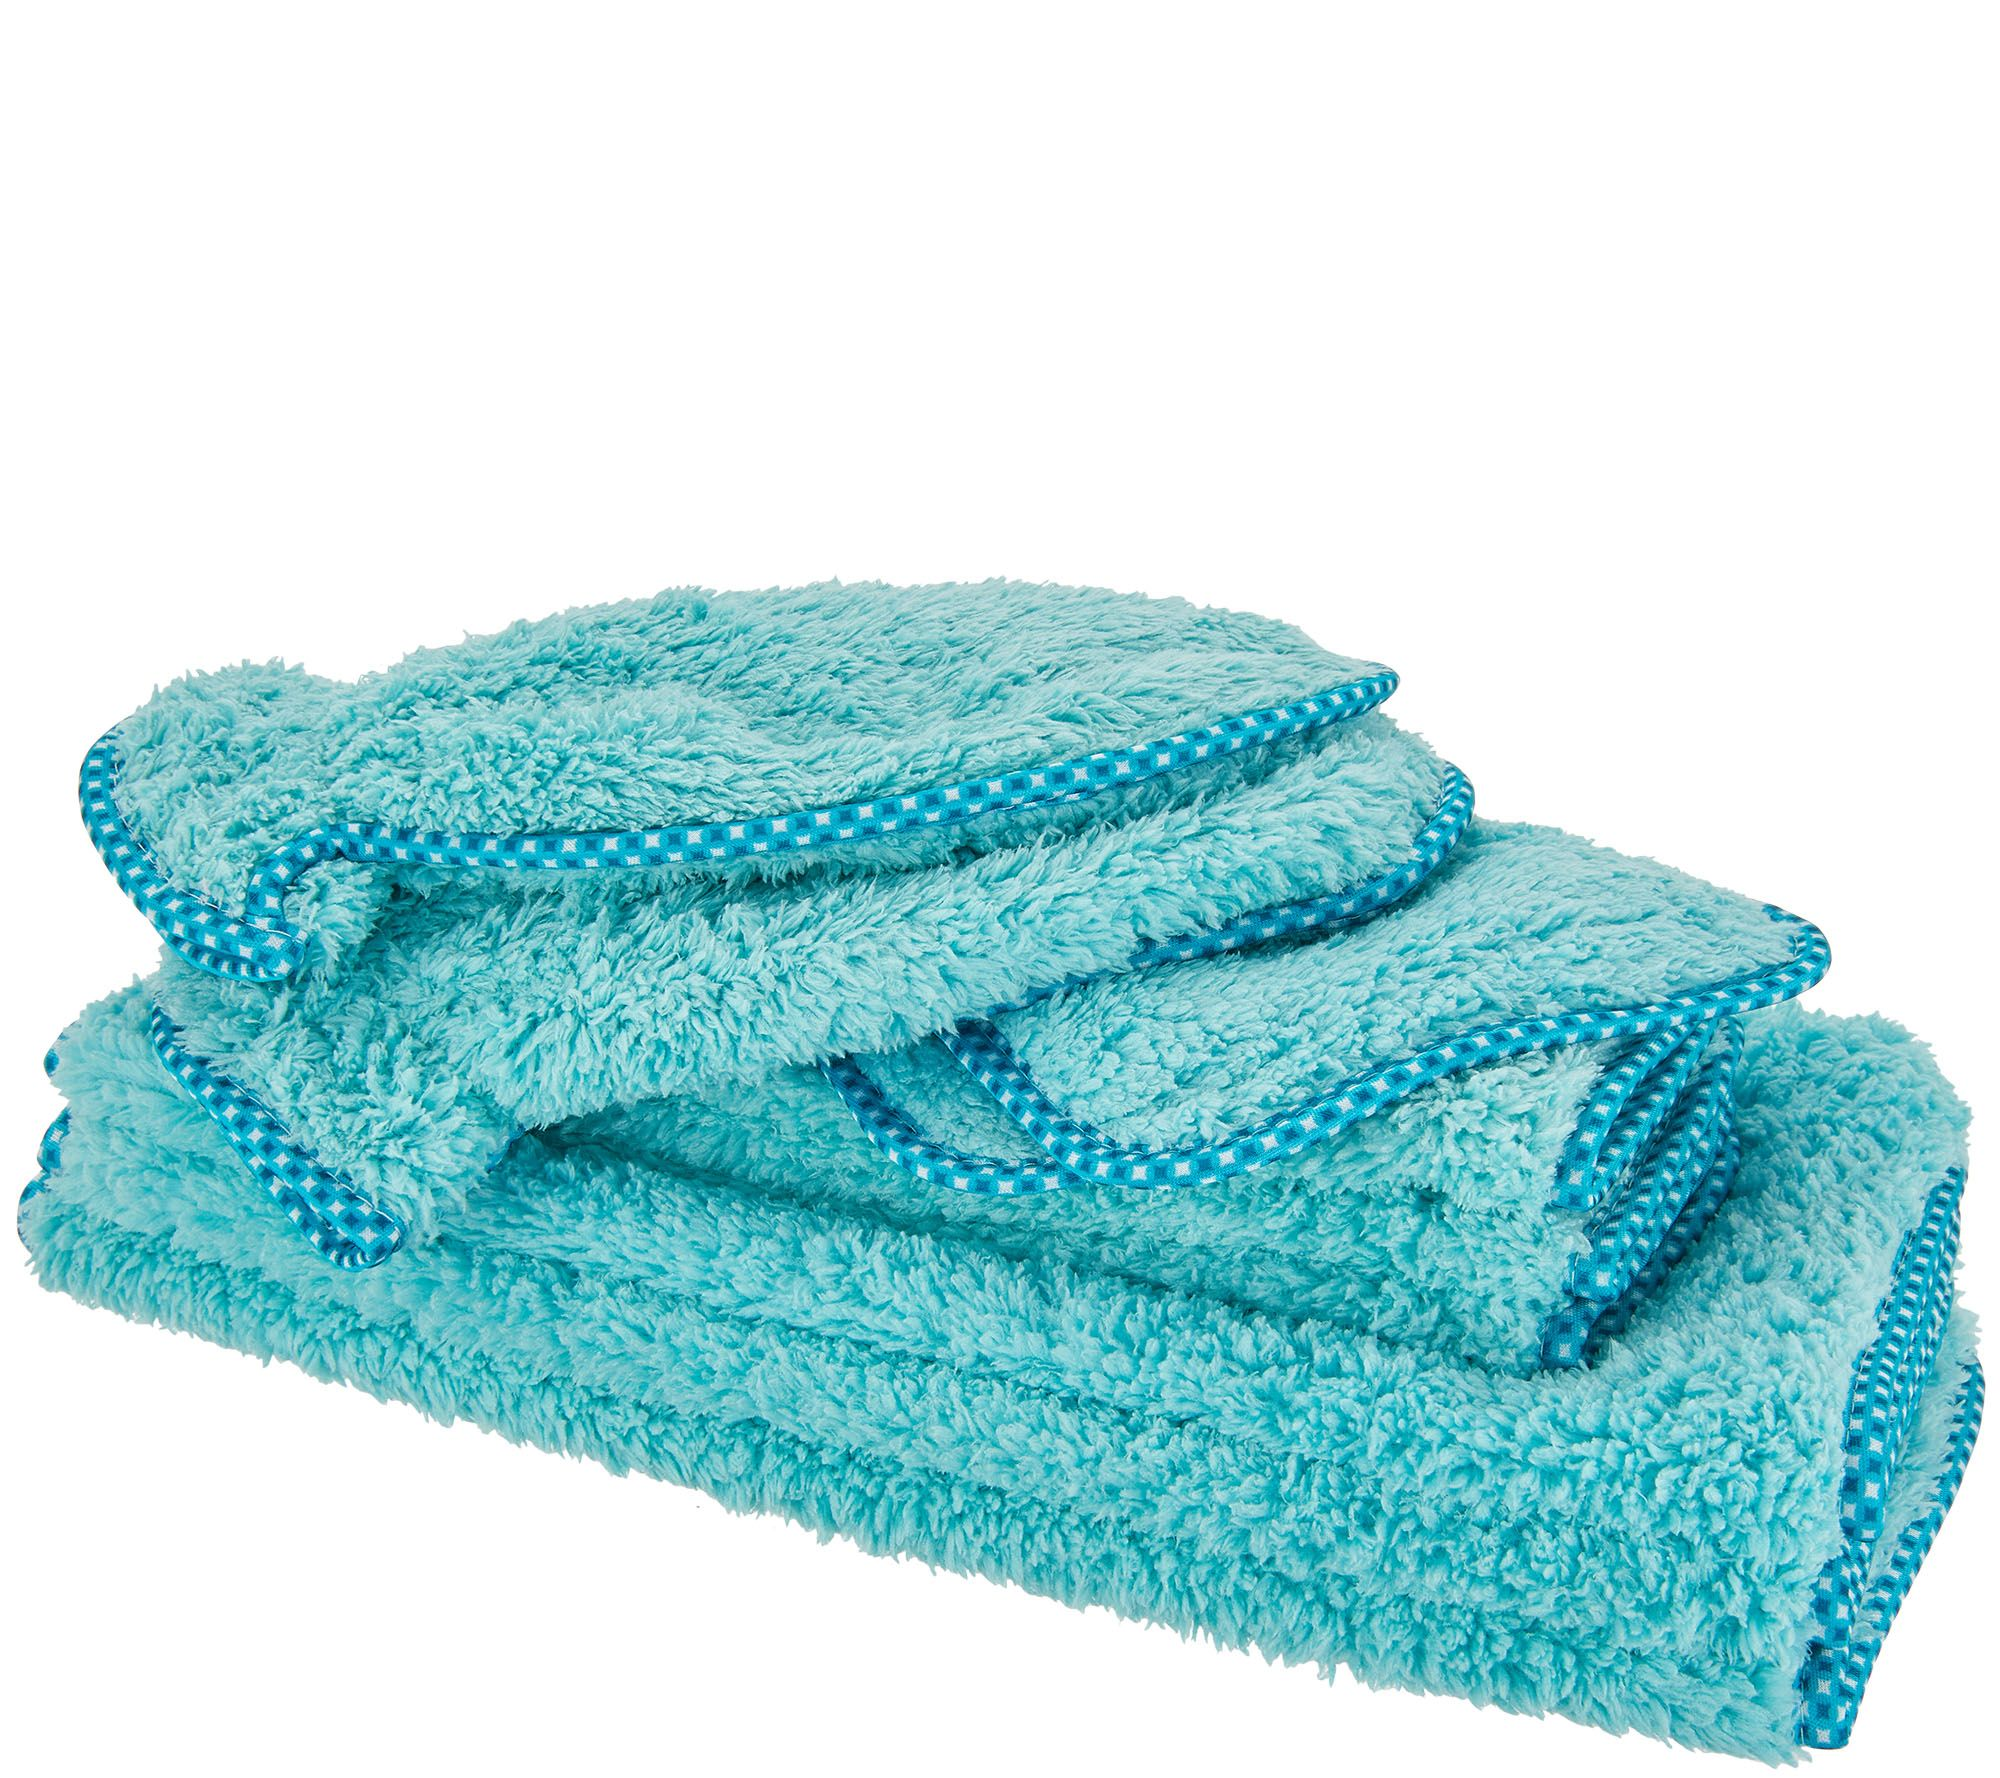 Gentle Super Soft Electronics Plush Cleaning Cloths for Makeup Removal Cars and More Dusting Green Campanellis PuppyFur Microfiber Towels Machine Washable and Dryer Safe 10-Piece Set